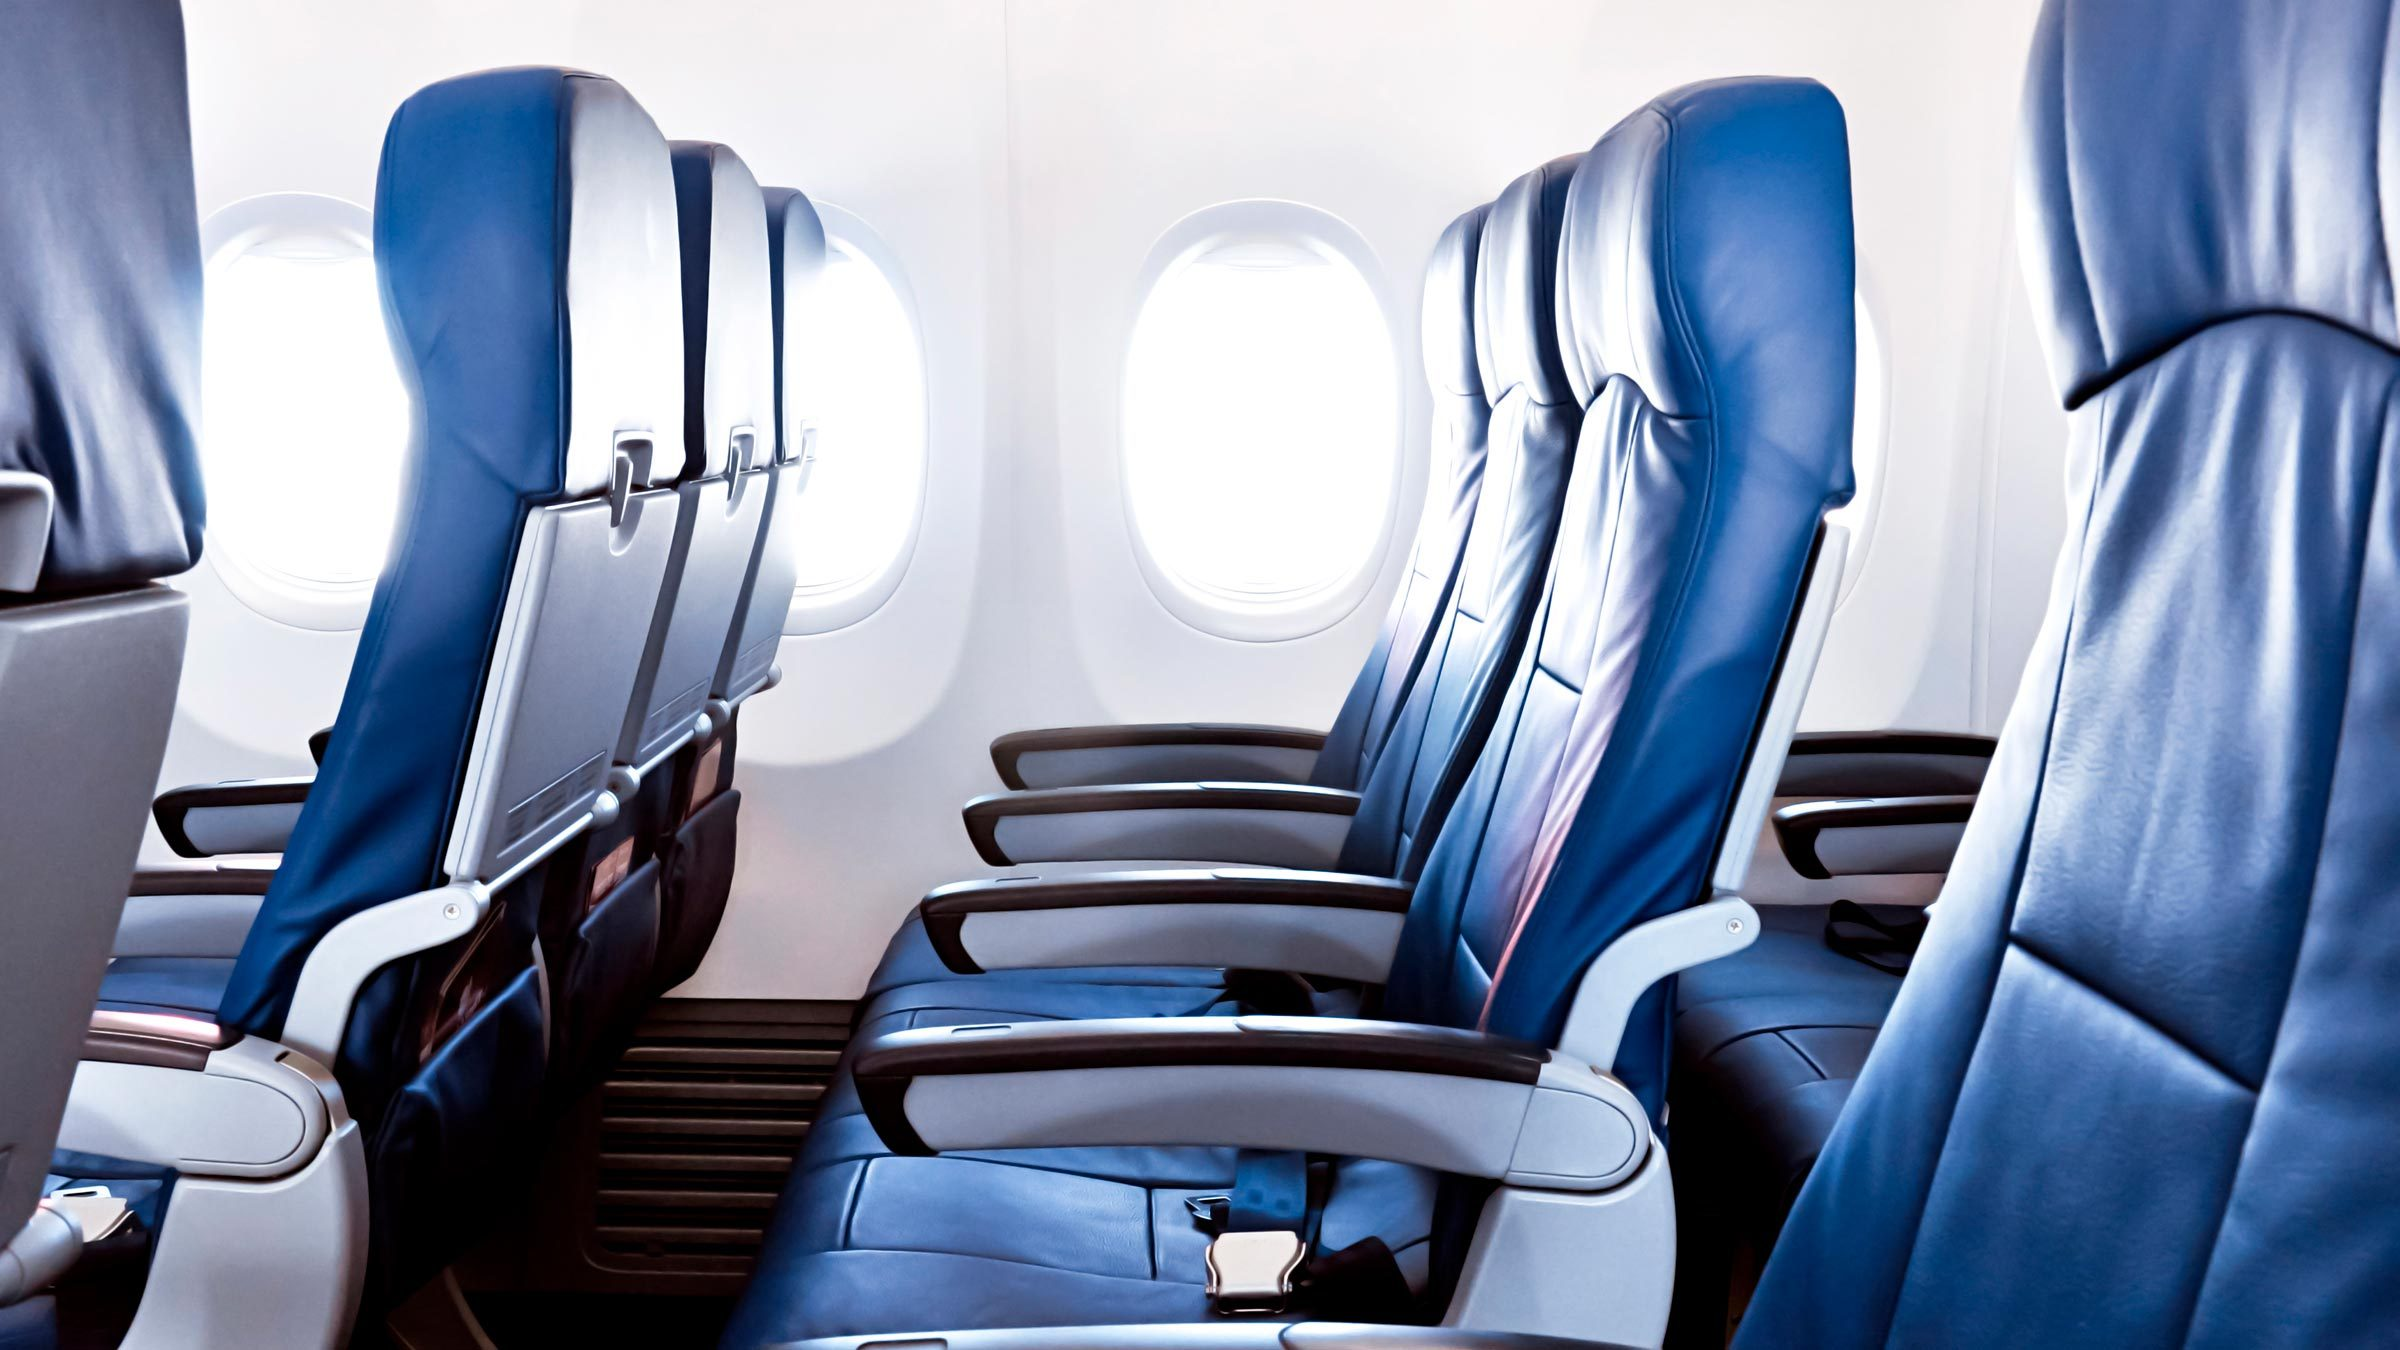 Empty airplane seats in the cabin